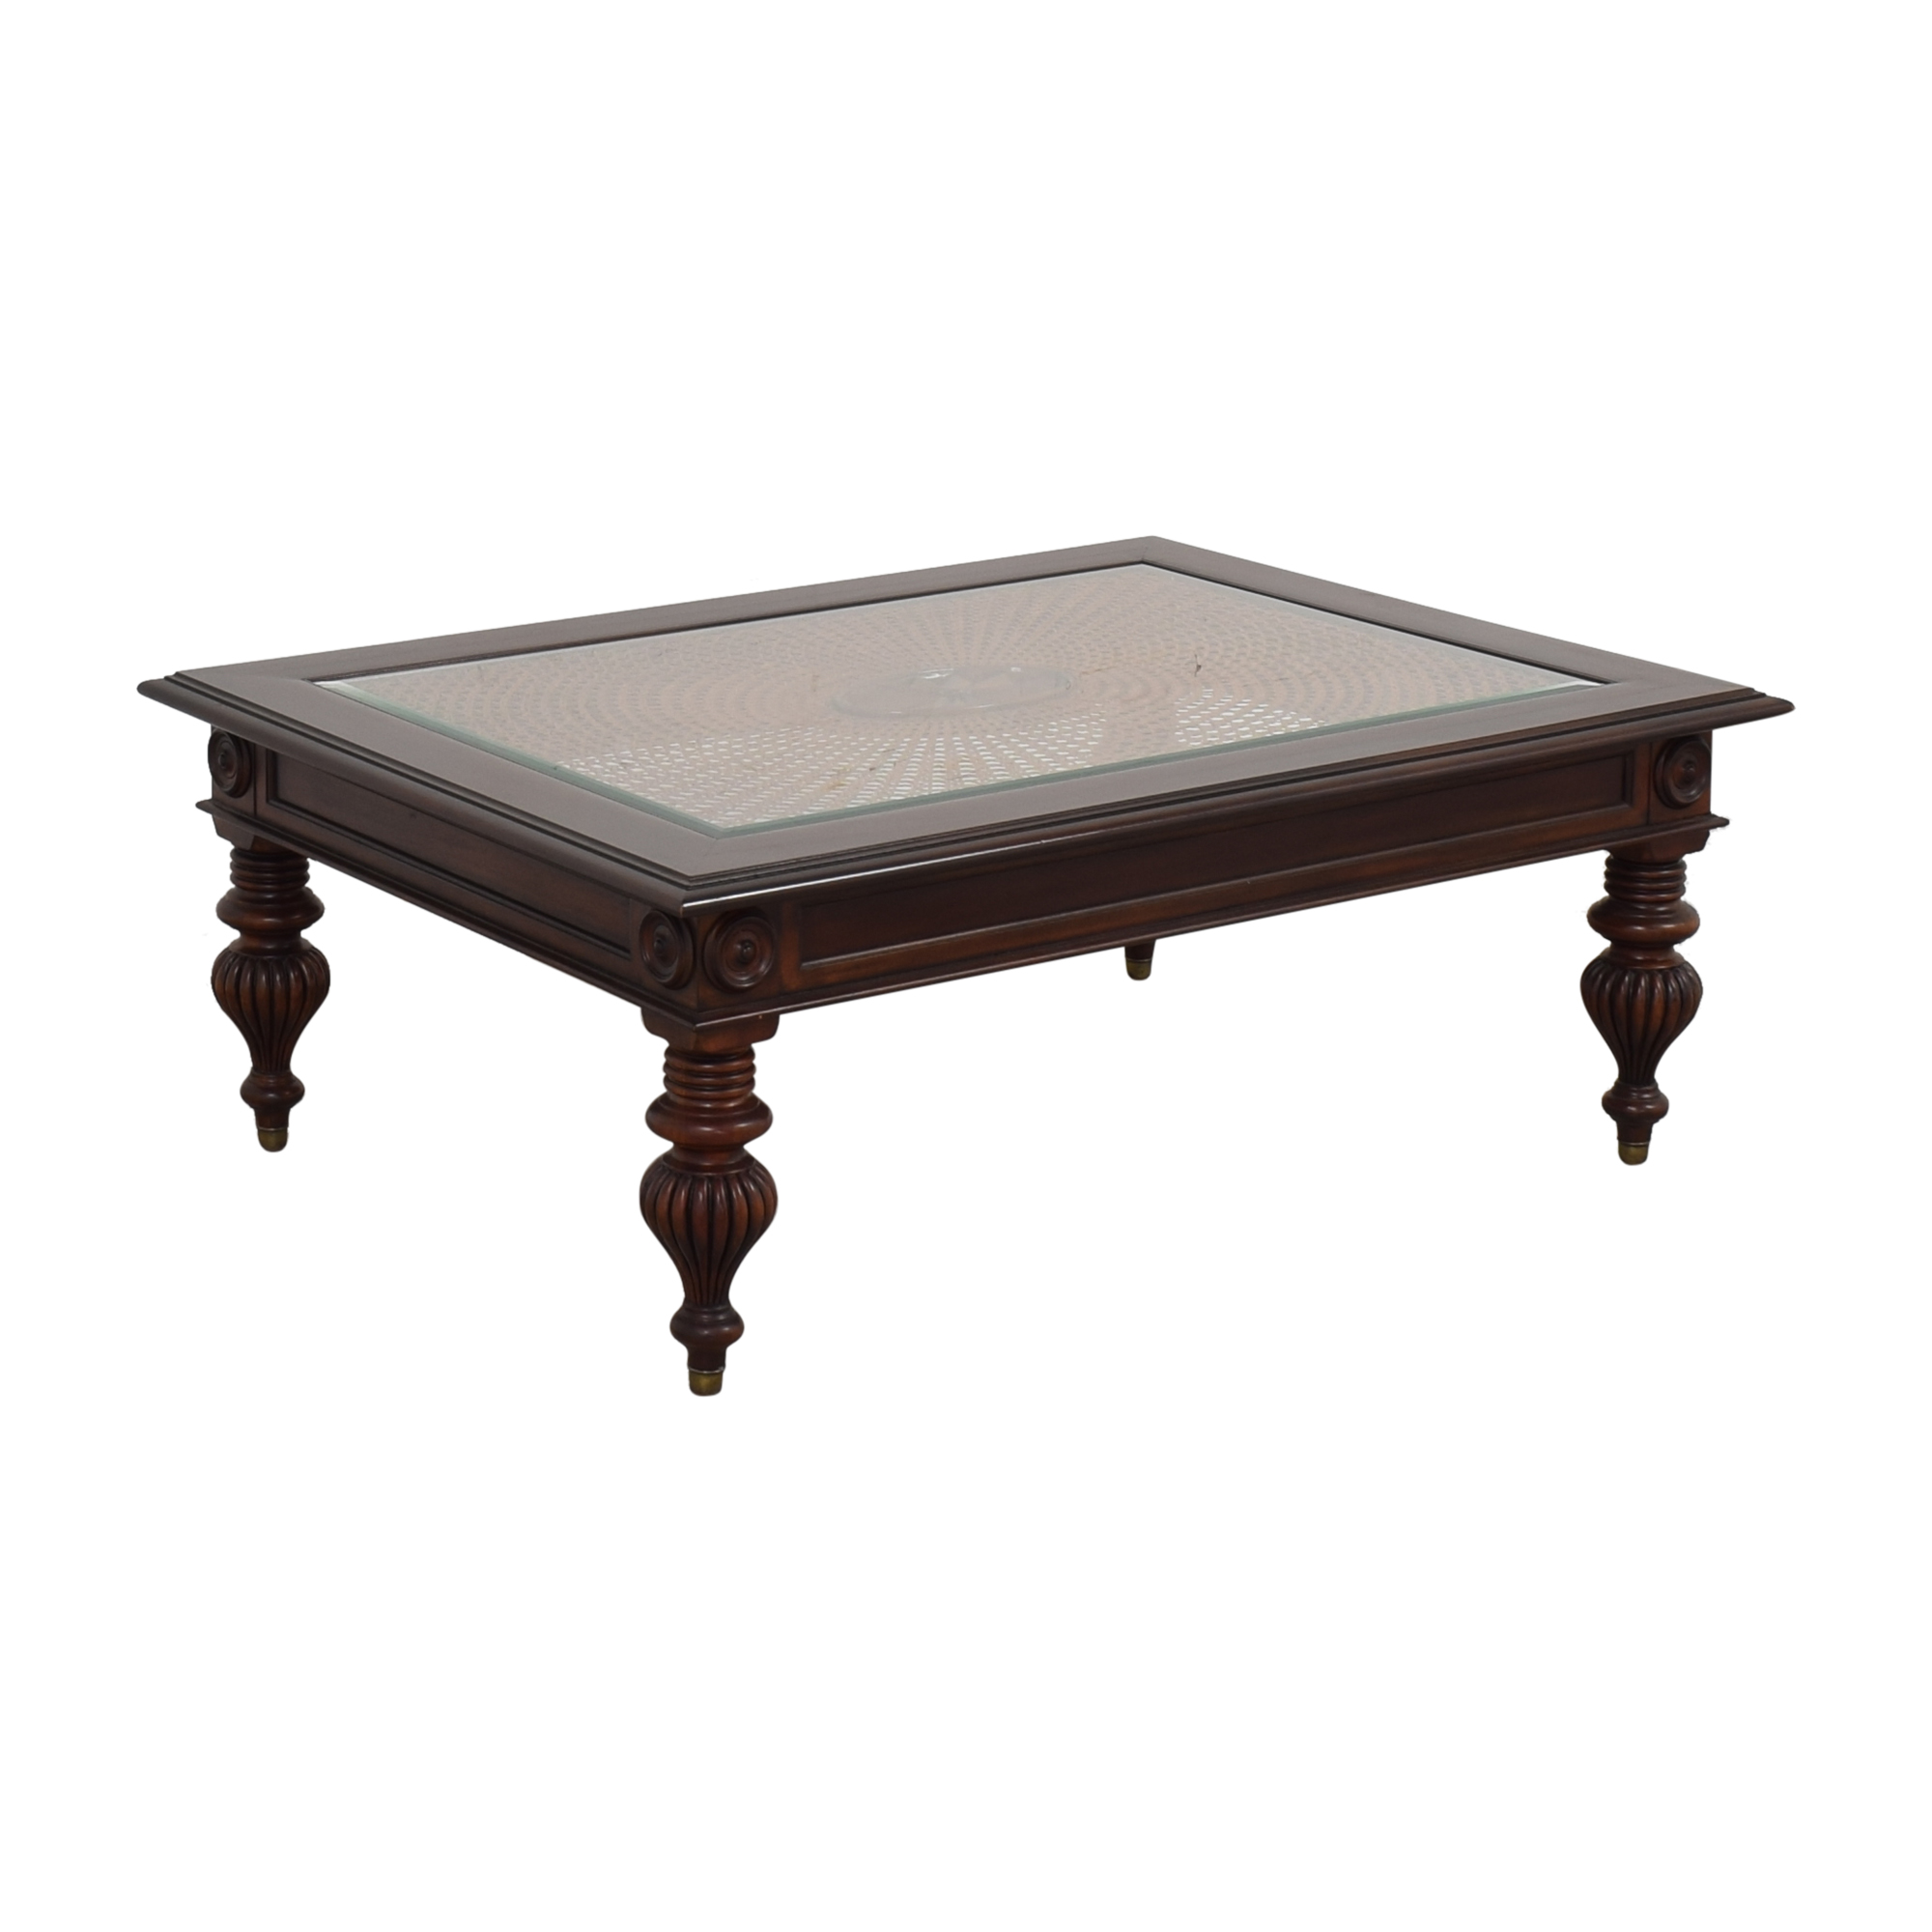 Ethan Allen Ethan Allen British Classic Coffee Table coupon